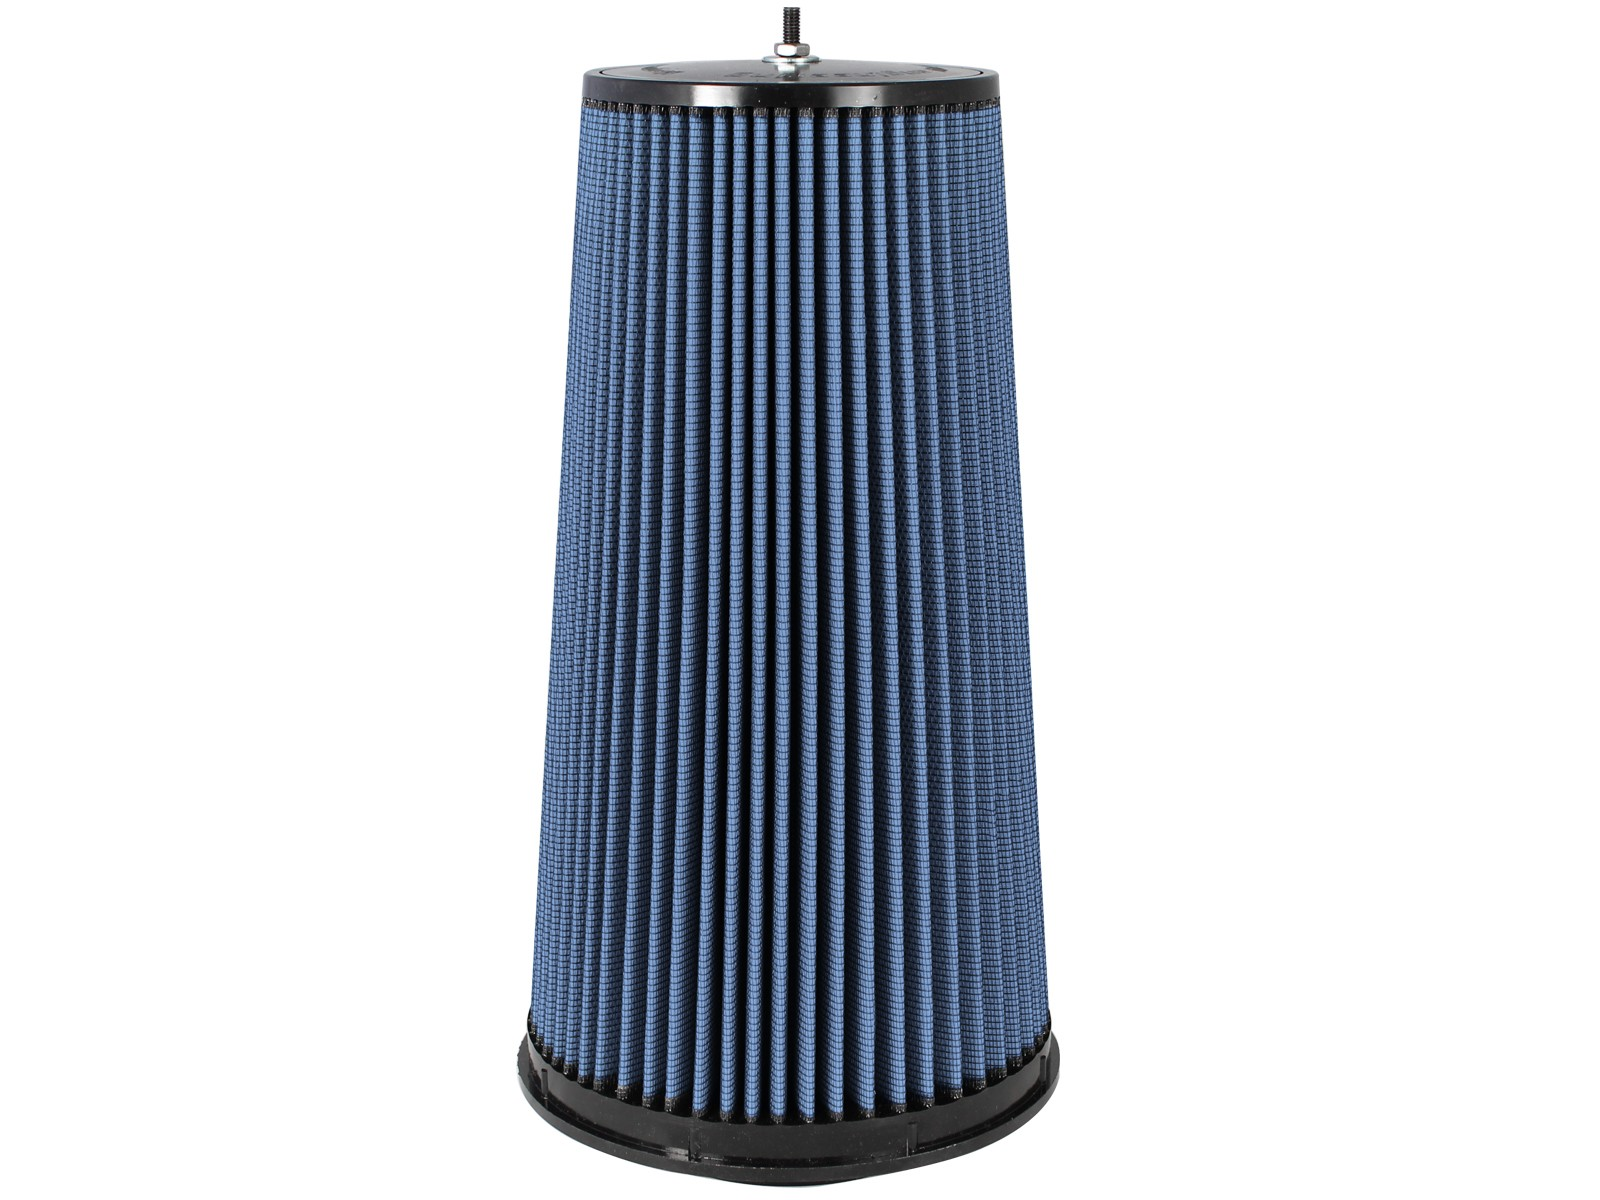 ProHDuty Pro 5R Air Filter for 70-50102, 70-50105